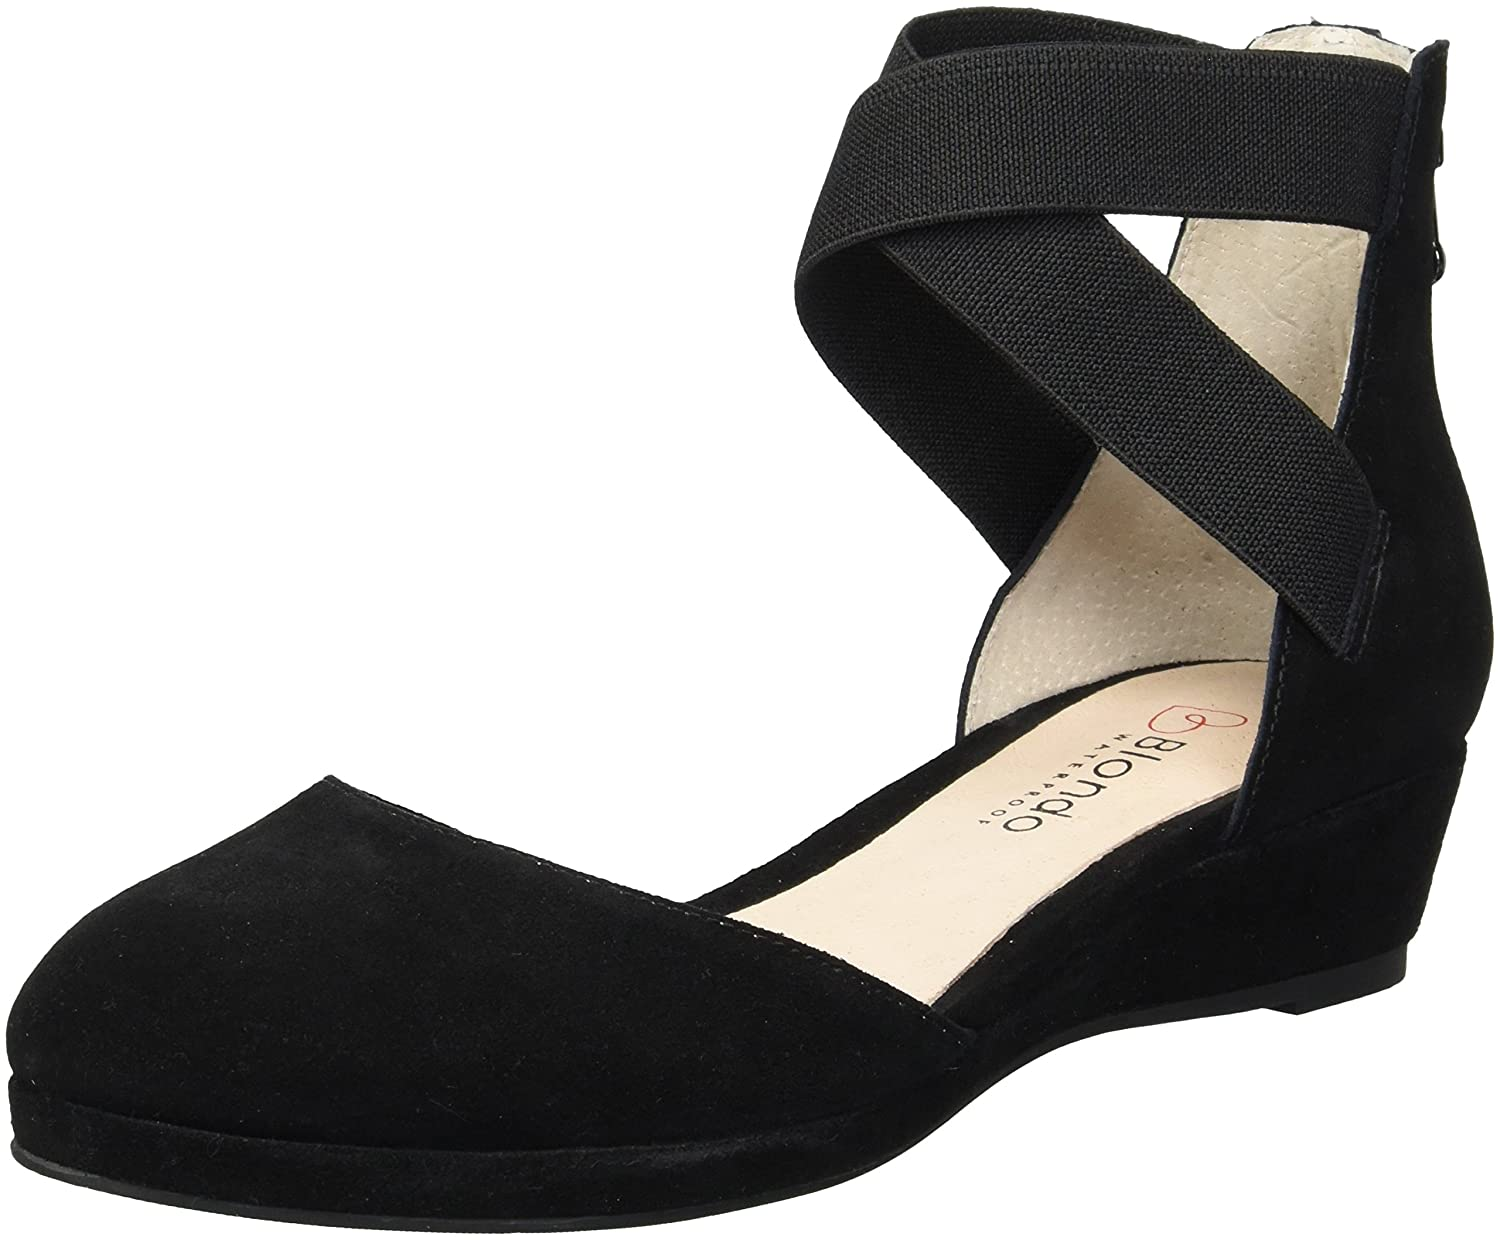 Blondo Women's Cathy Waterproof Ballet Flat B079G1LPRJ 8 B(M) US|Black Suede